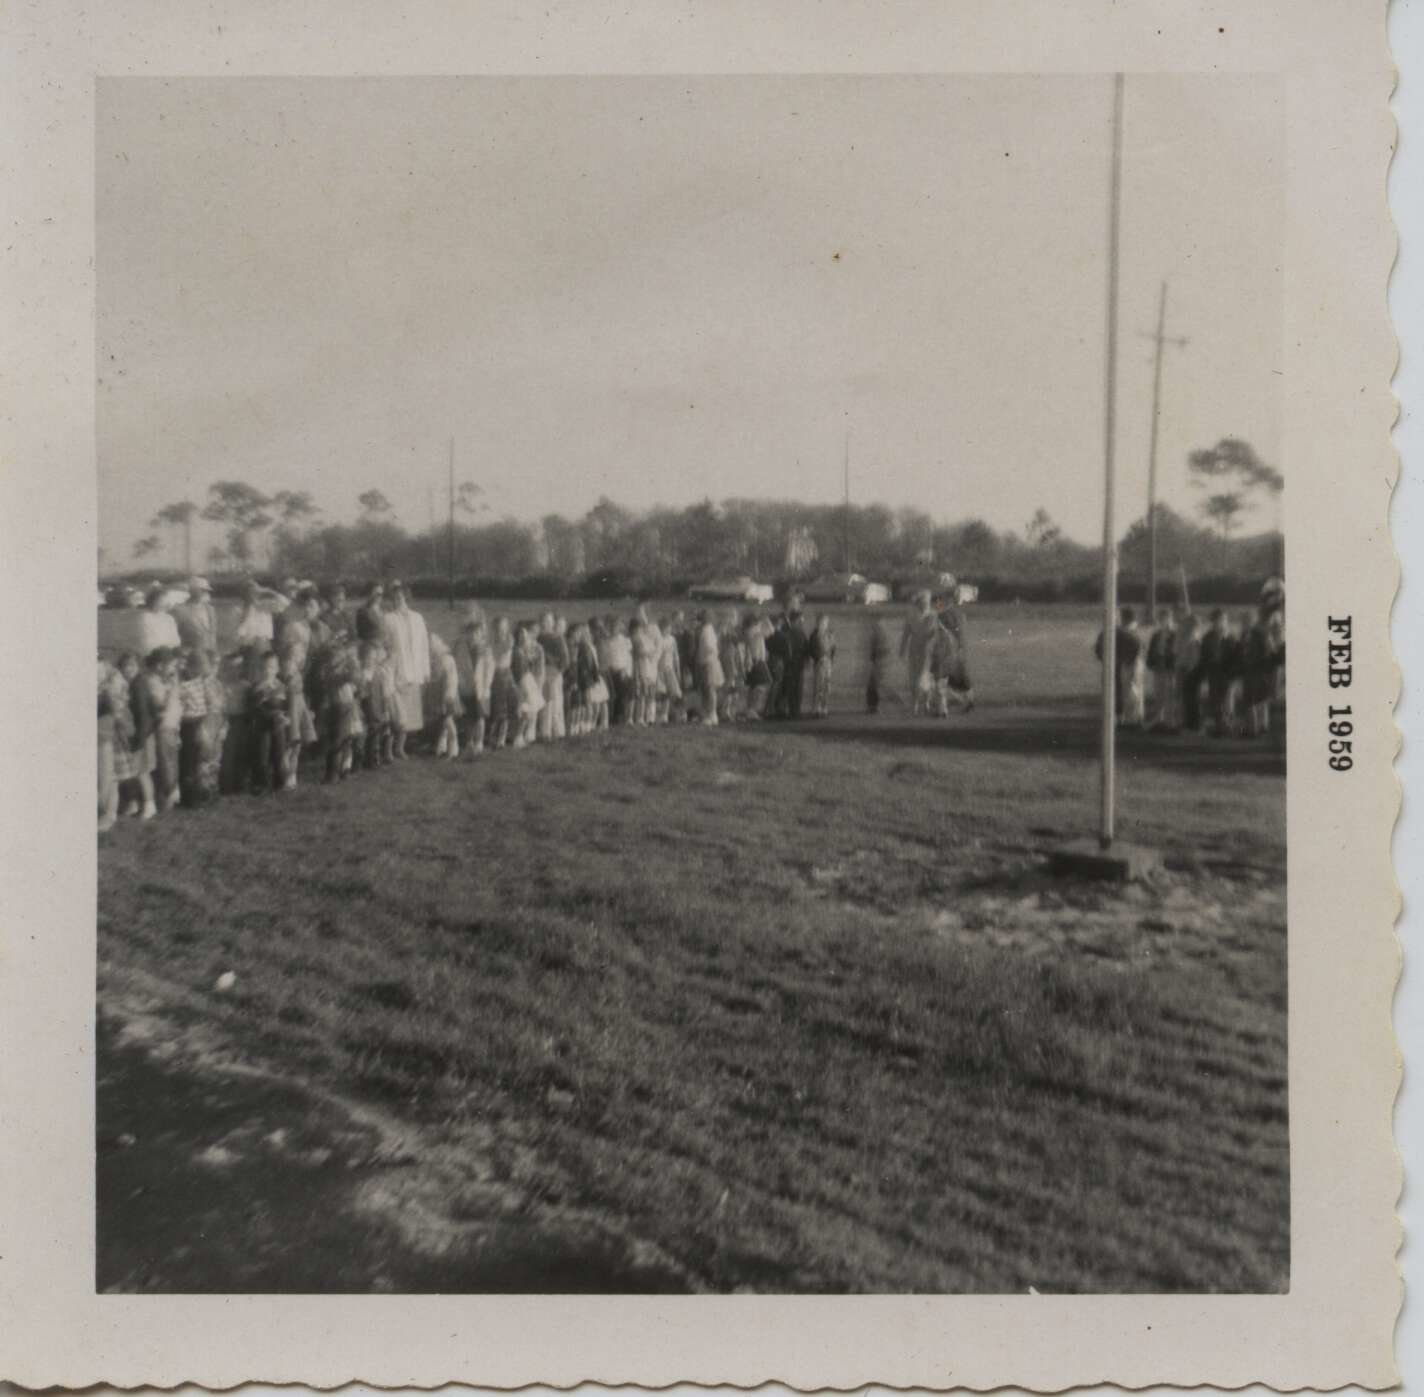 1959 flag ceremony official